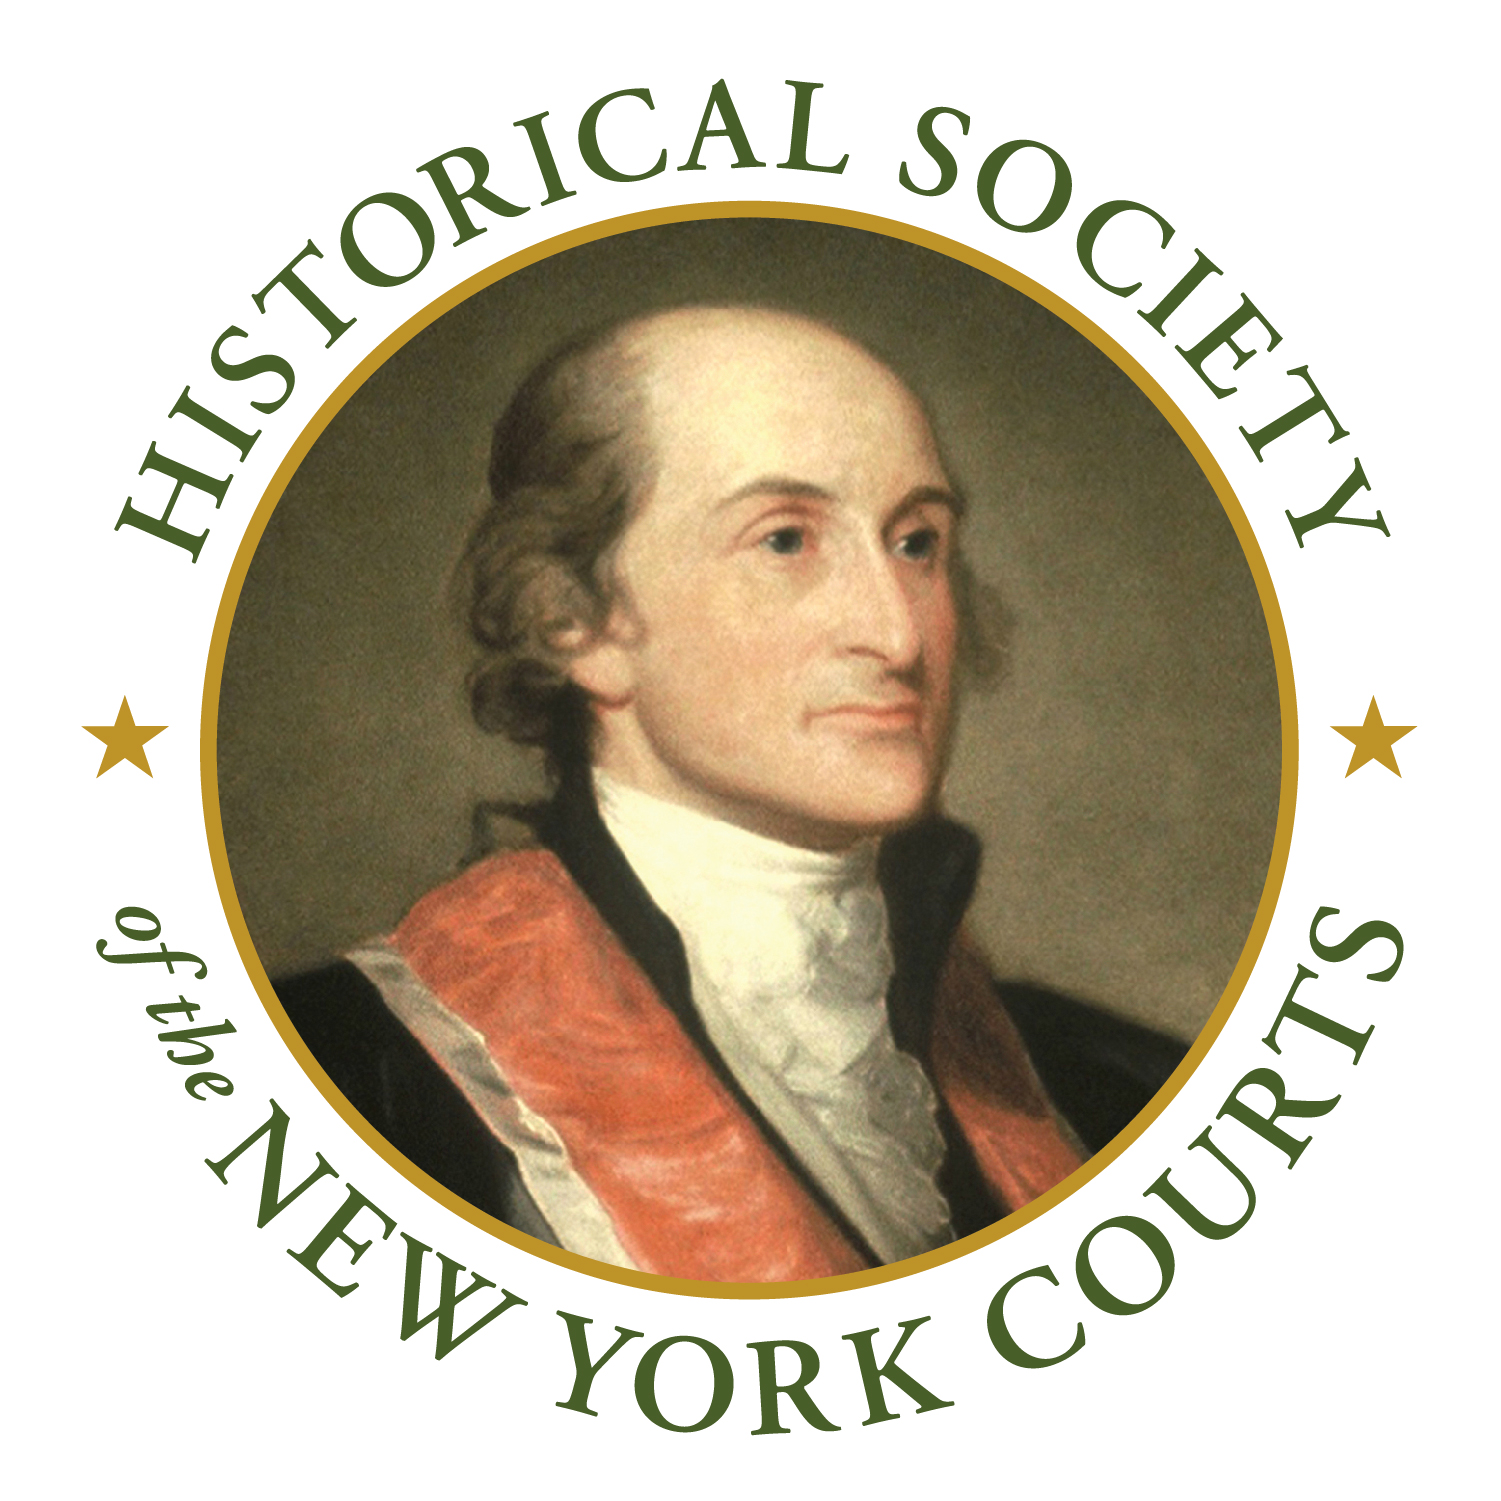 [Justice and the New York Courts Workshop] The Historical Society of the New York Courts preserves, protects and promotes the legal history of New York, including the proud heritage of its courts and the development of the Rule of Law.